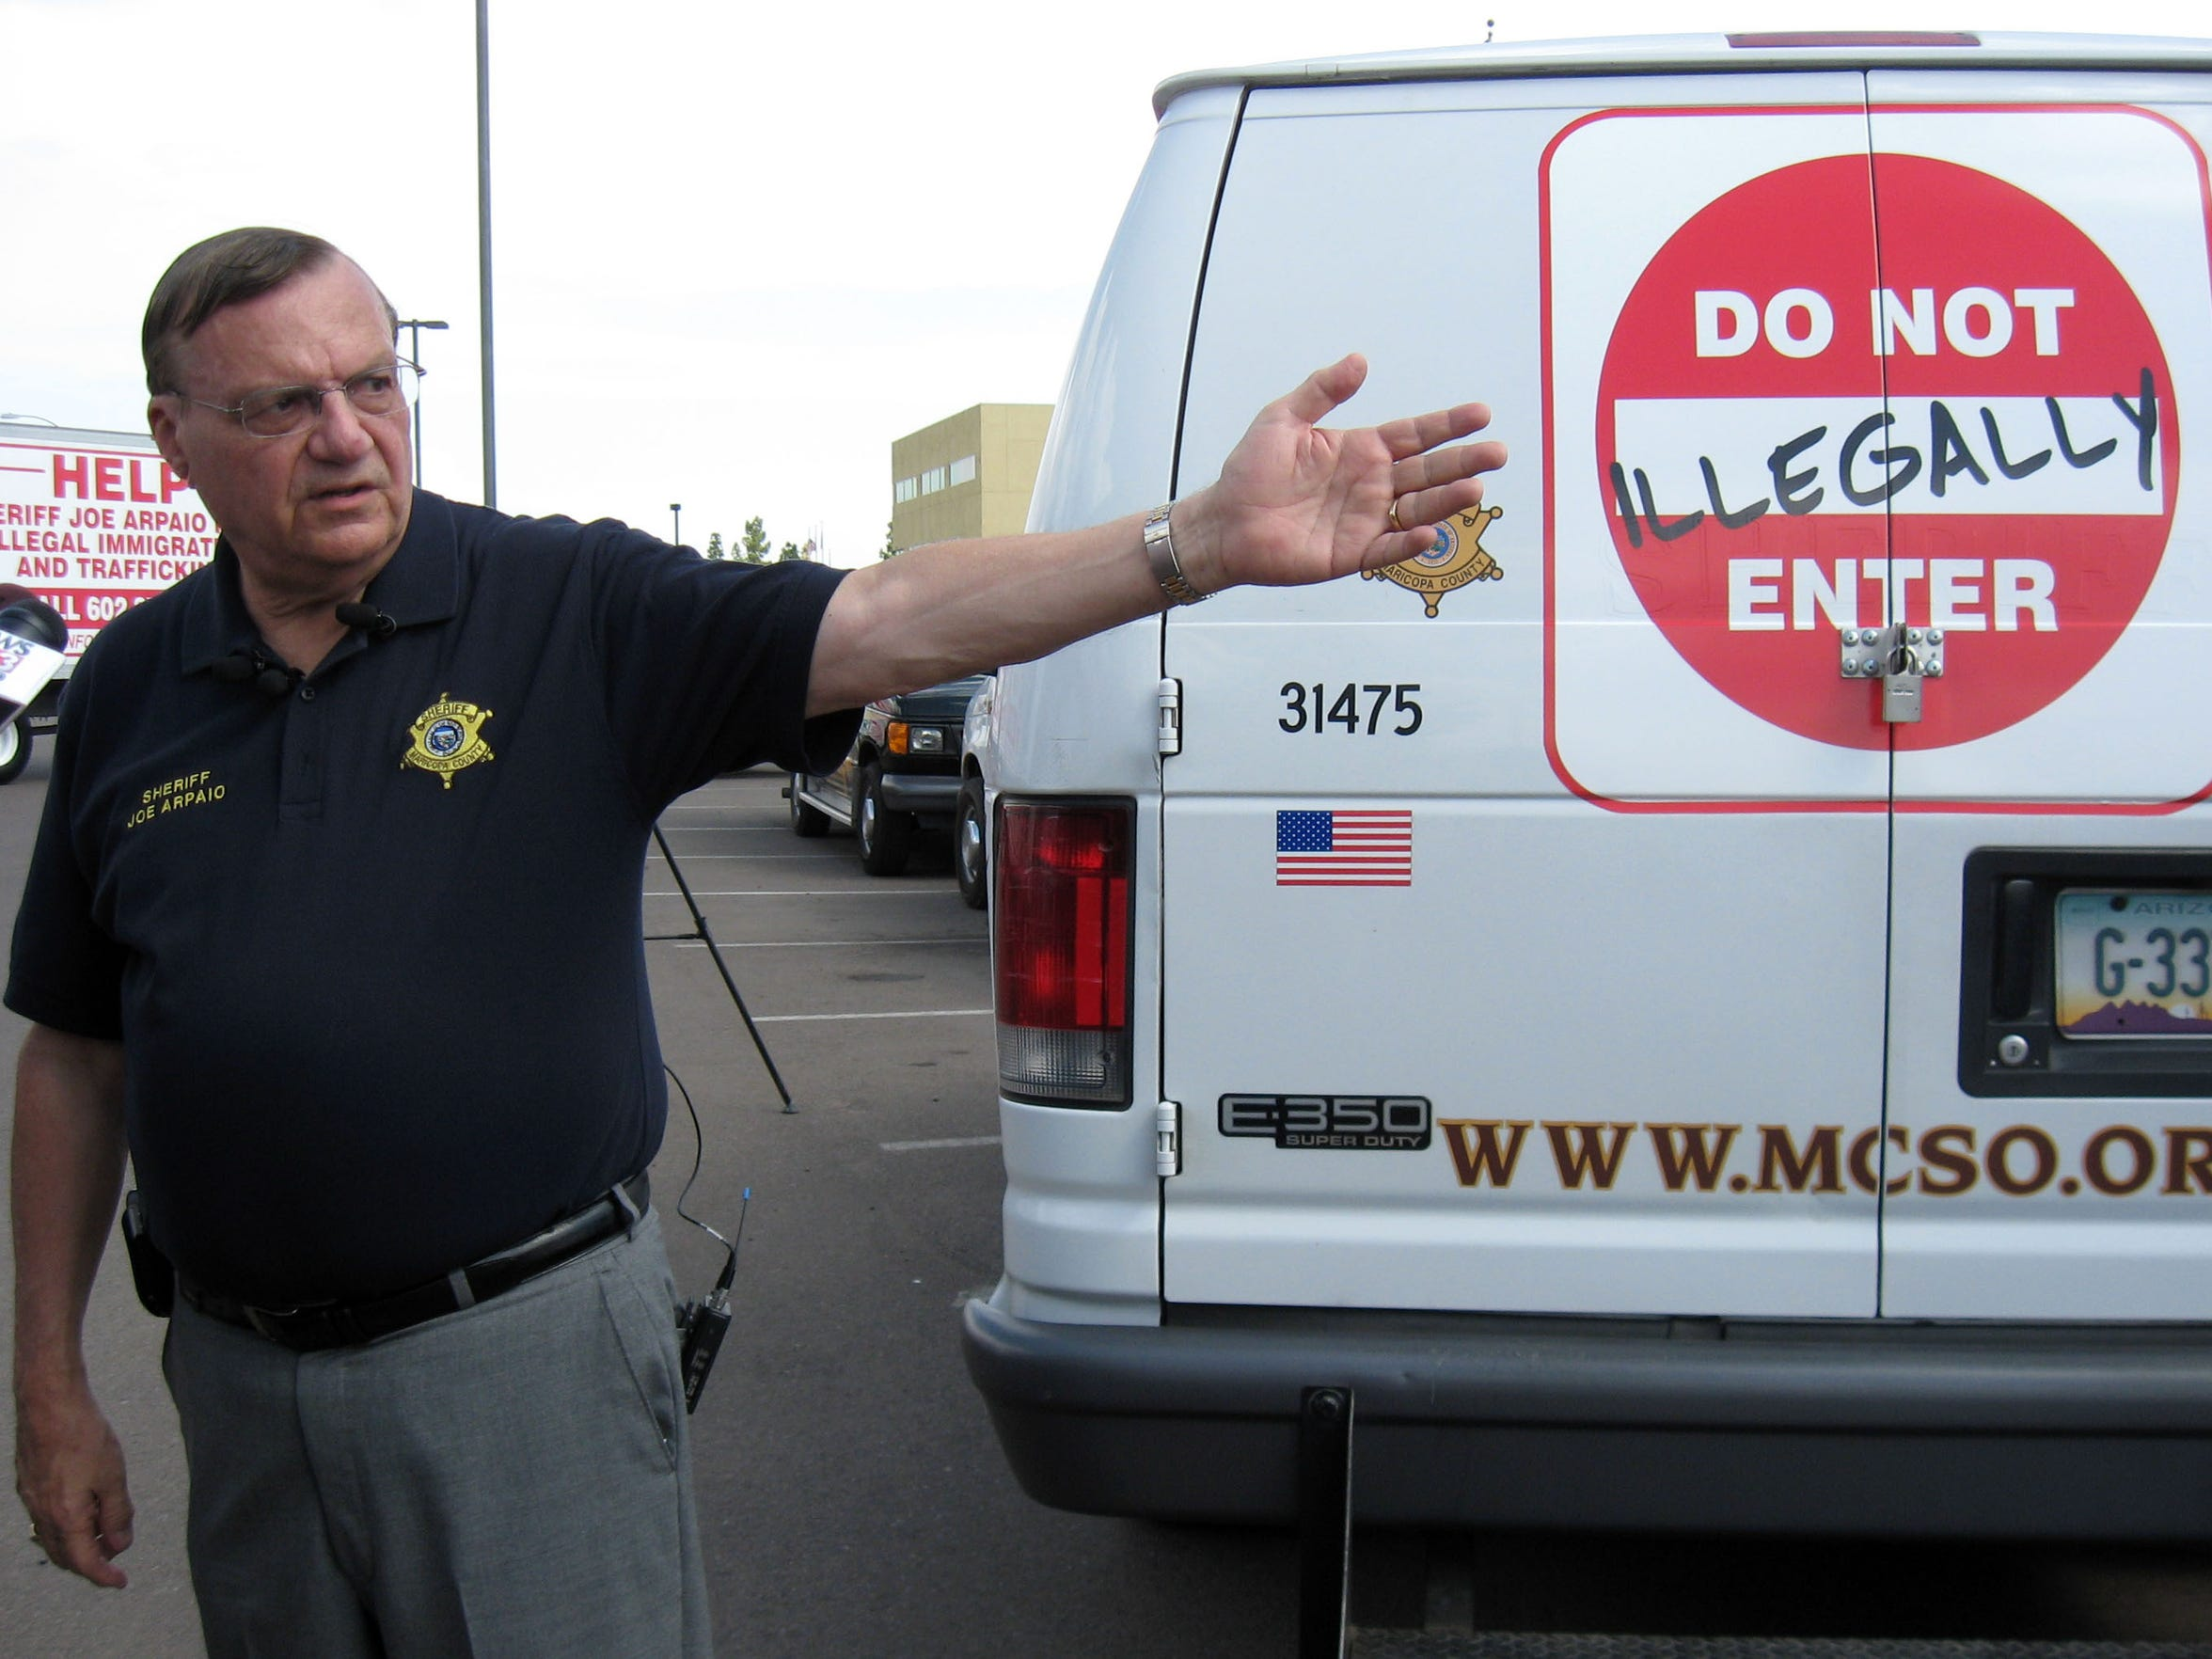 Arpaio shows off one of several vehicles advertising his anti-illegal-immigration hotline in 2007.